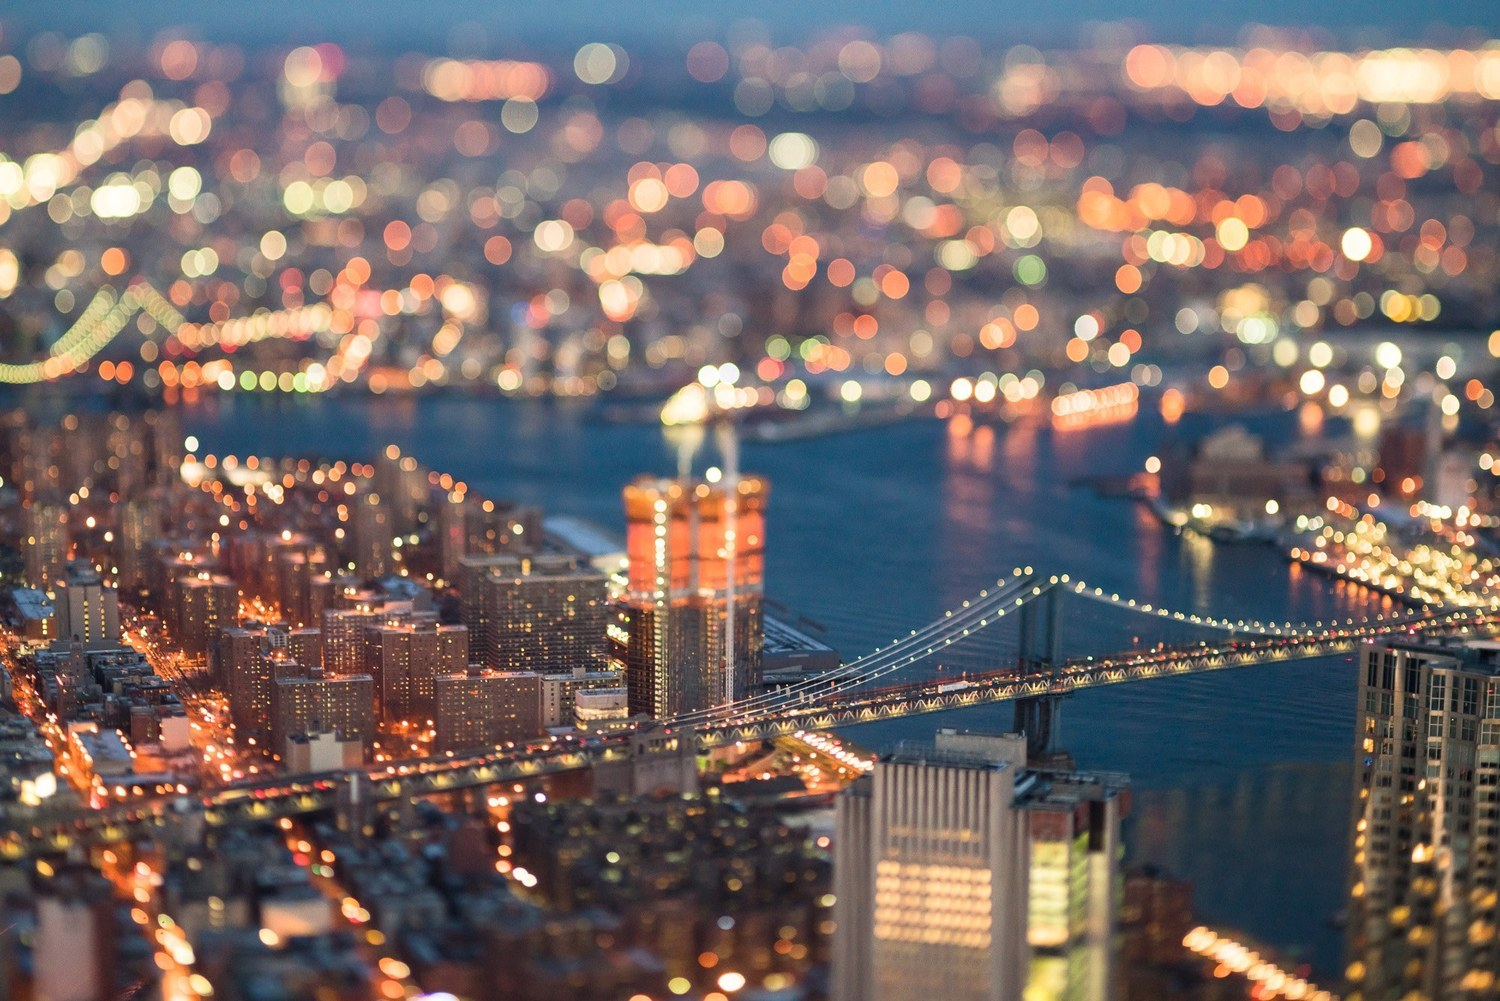 Bilder Von New York New York Resized A Collection Of Interesting Tilt Shift